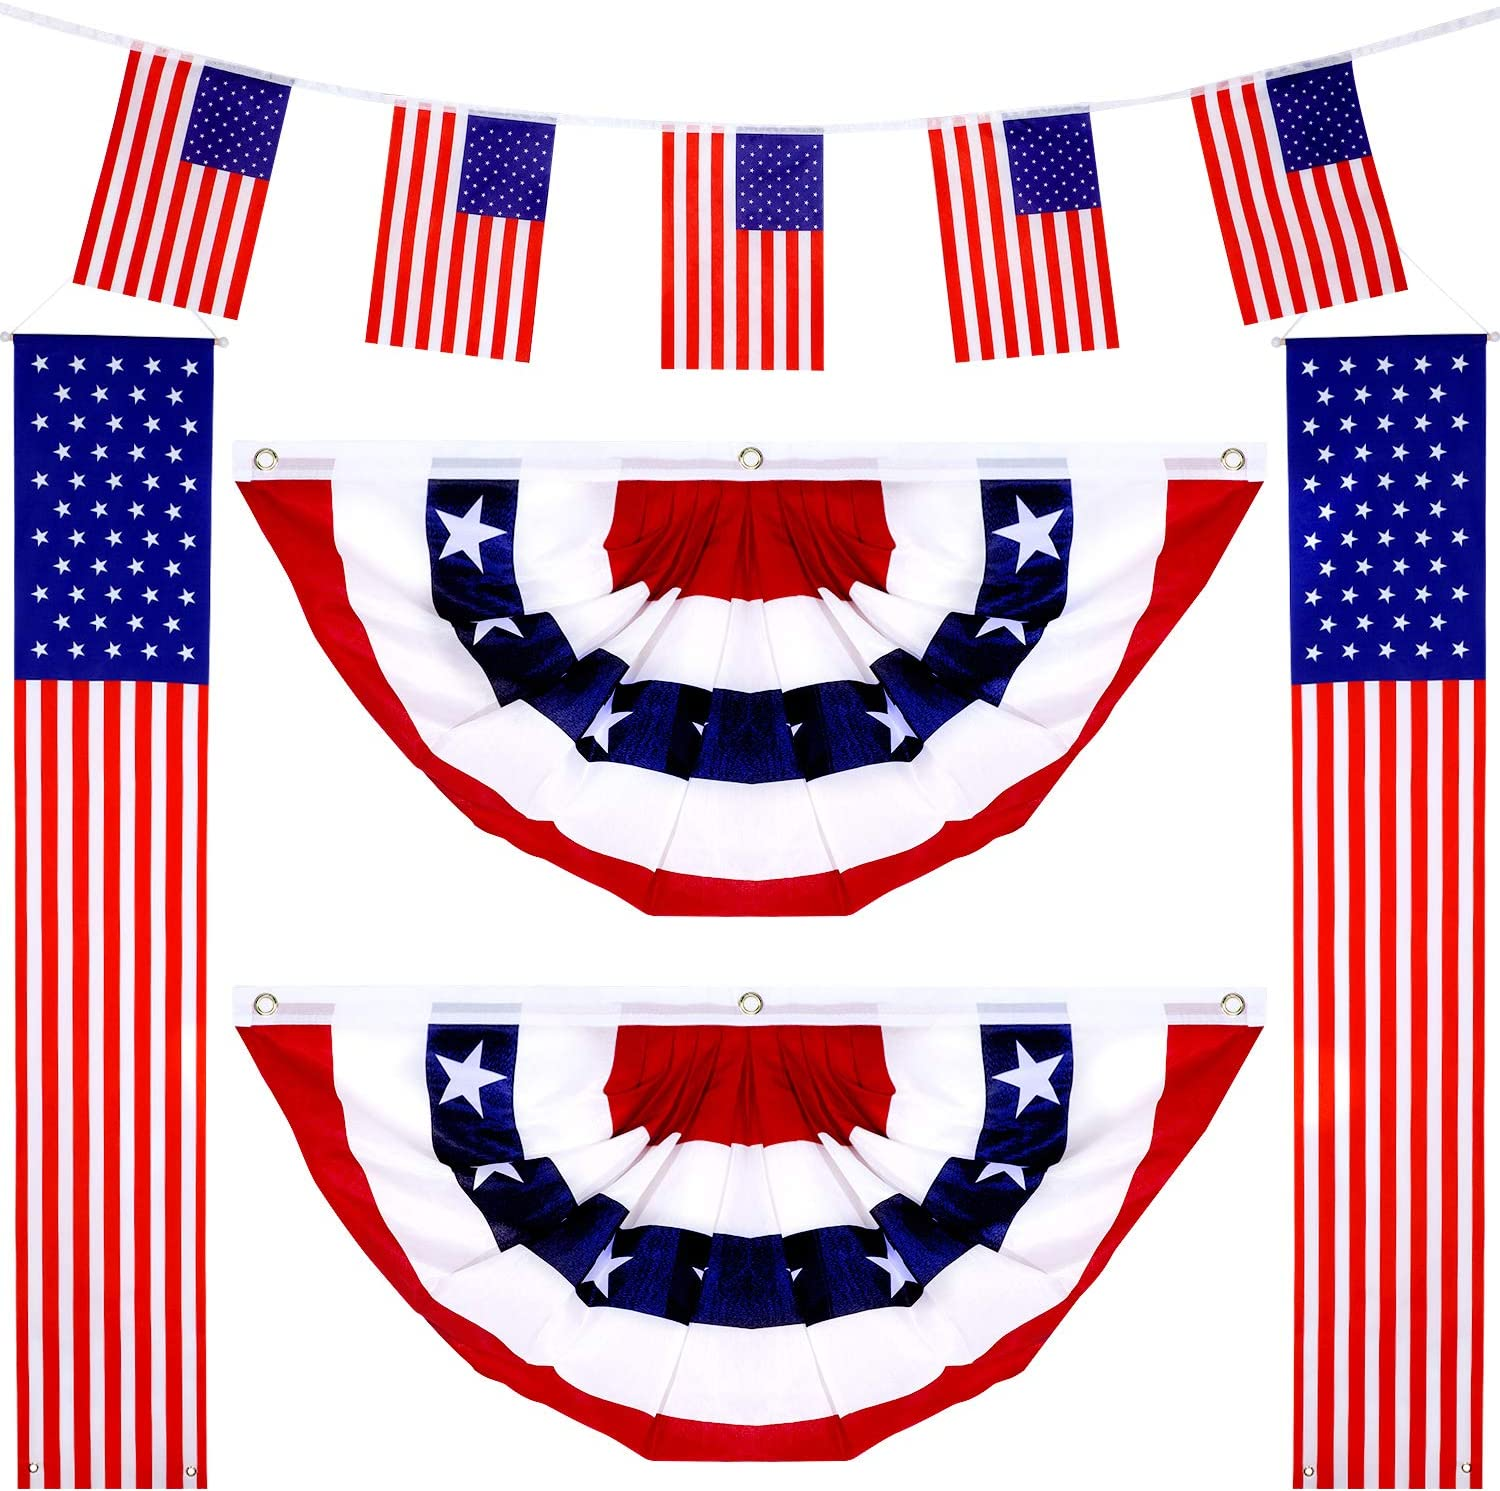 Amazon Com 1 Pair 180 X 30 Cm American Decor Hanging Flag Banners 1 Pair 45 X 90 Cm Usa Pleated Fan Flag And 5 Pieces Bunting String Pennant Banners For Patriotic